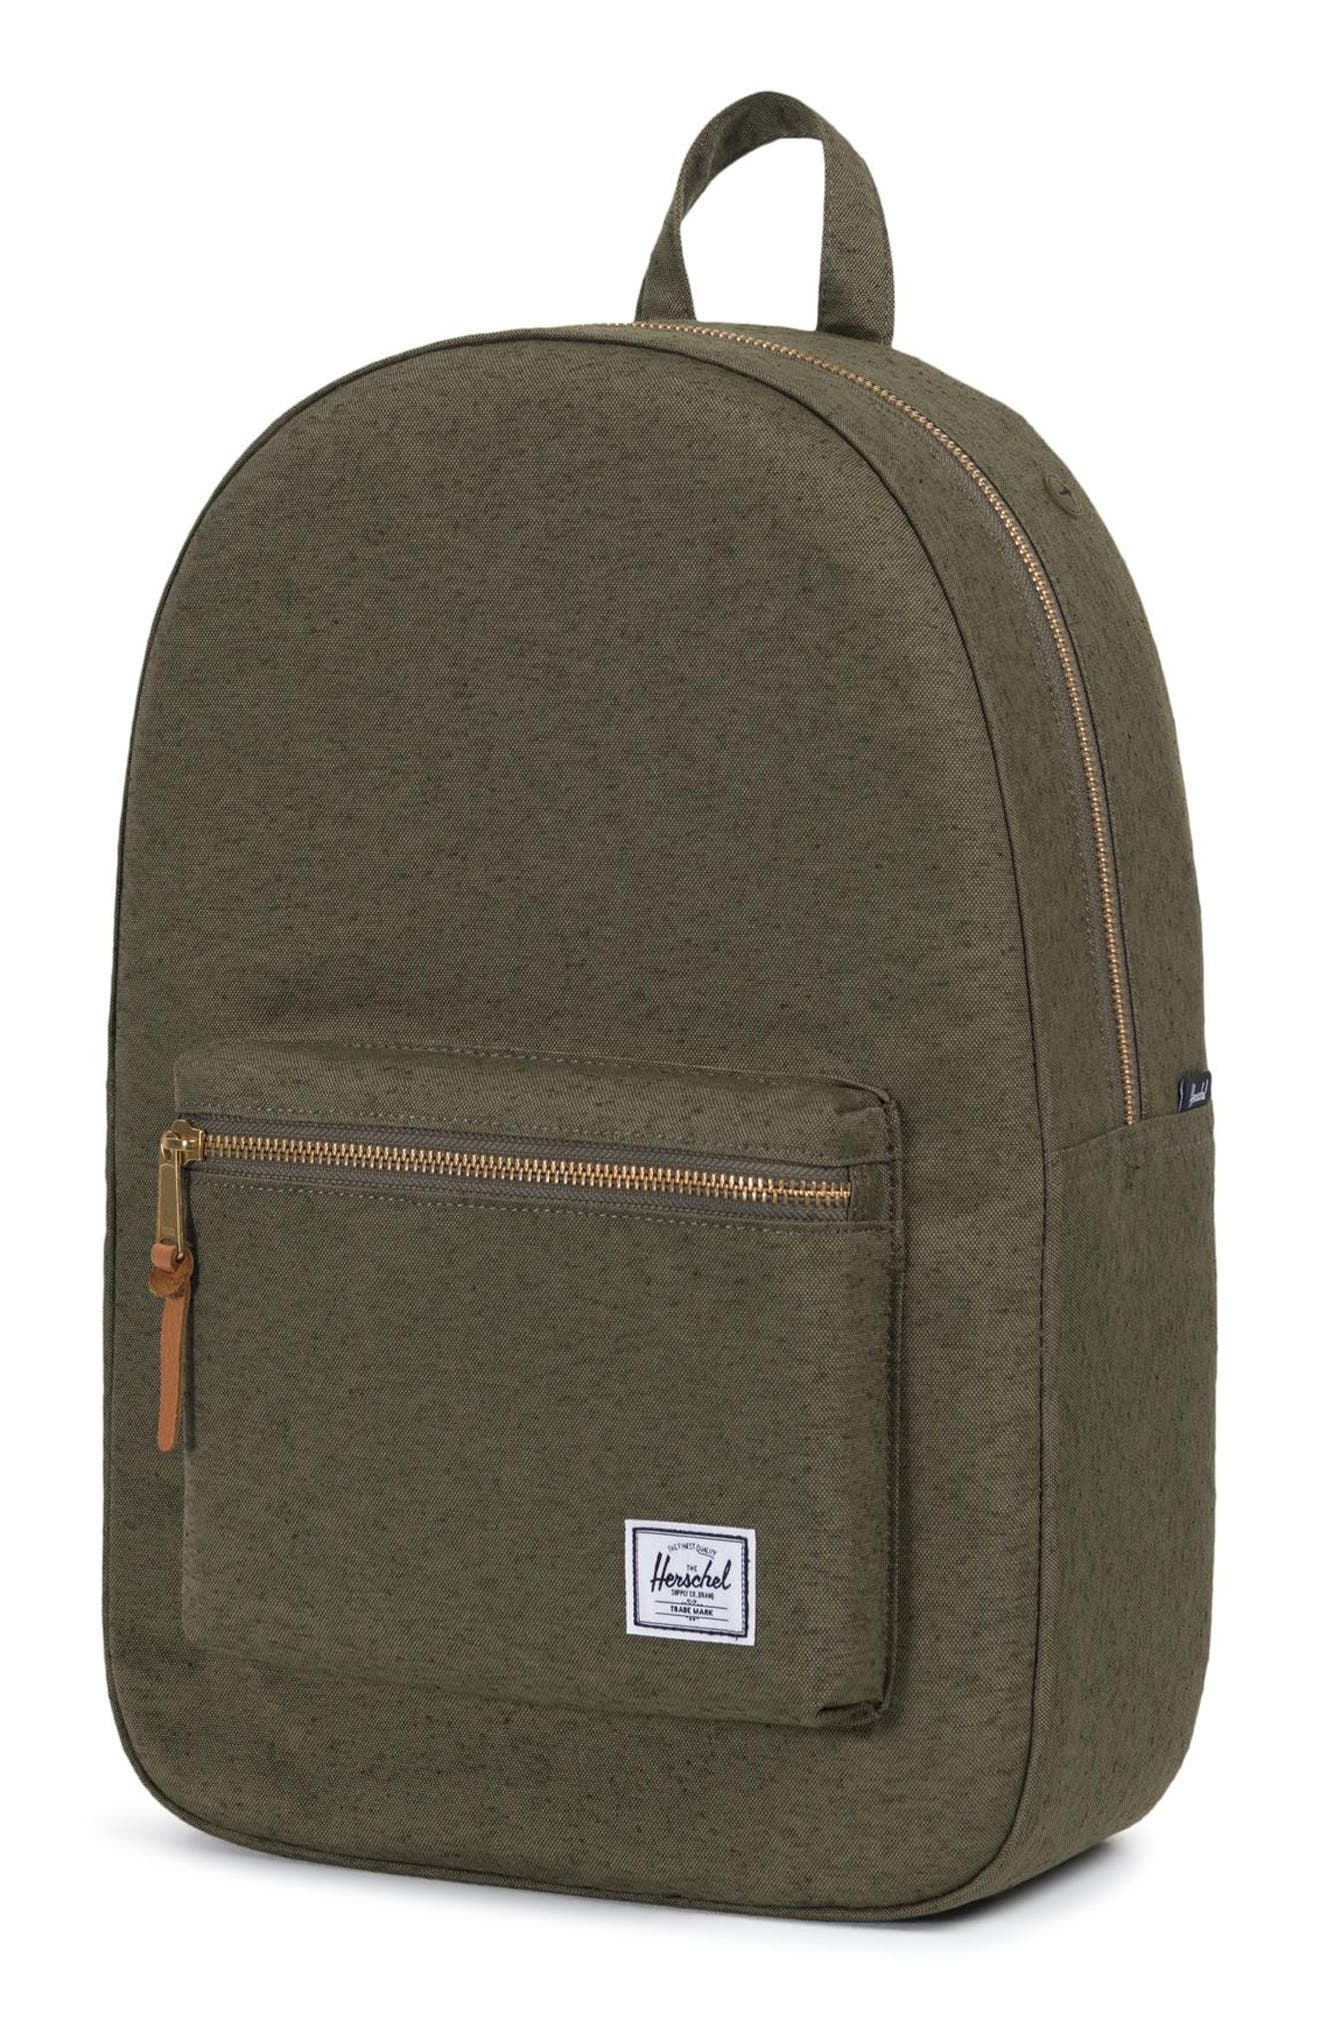 Settlement Backpack,                             Alternate thumbnail 5, color,                             IVY GREEN SLUB